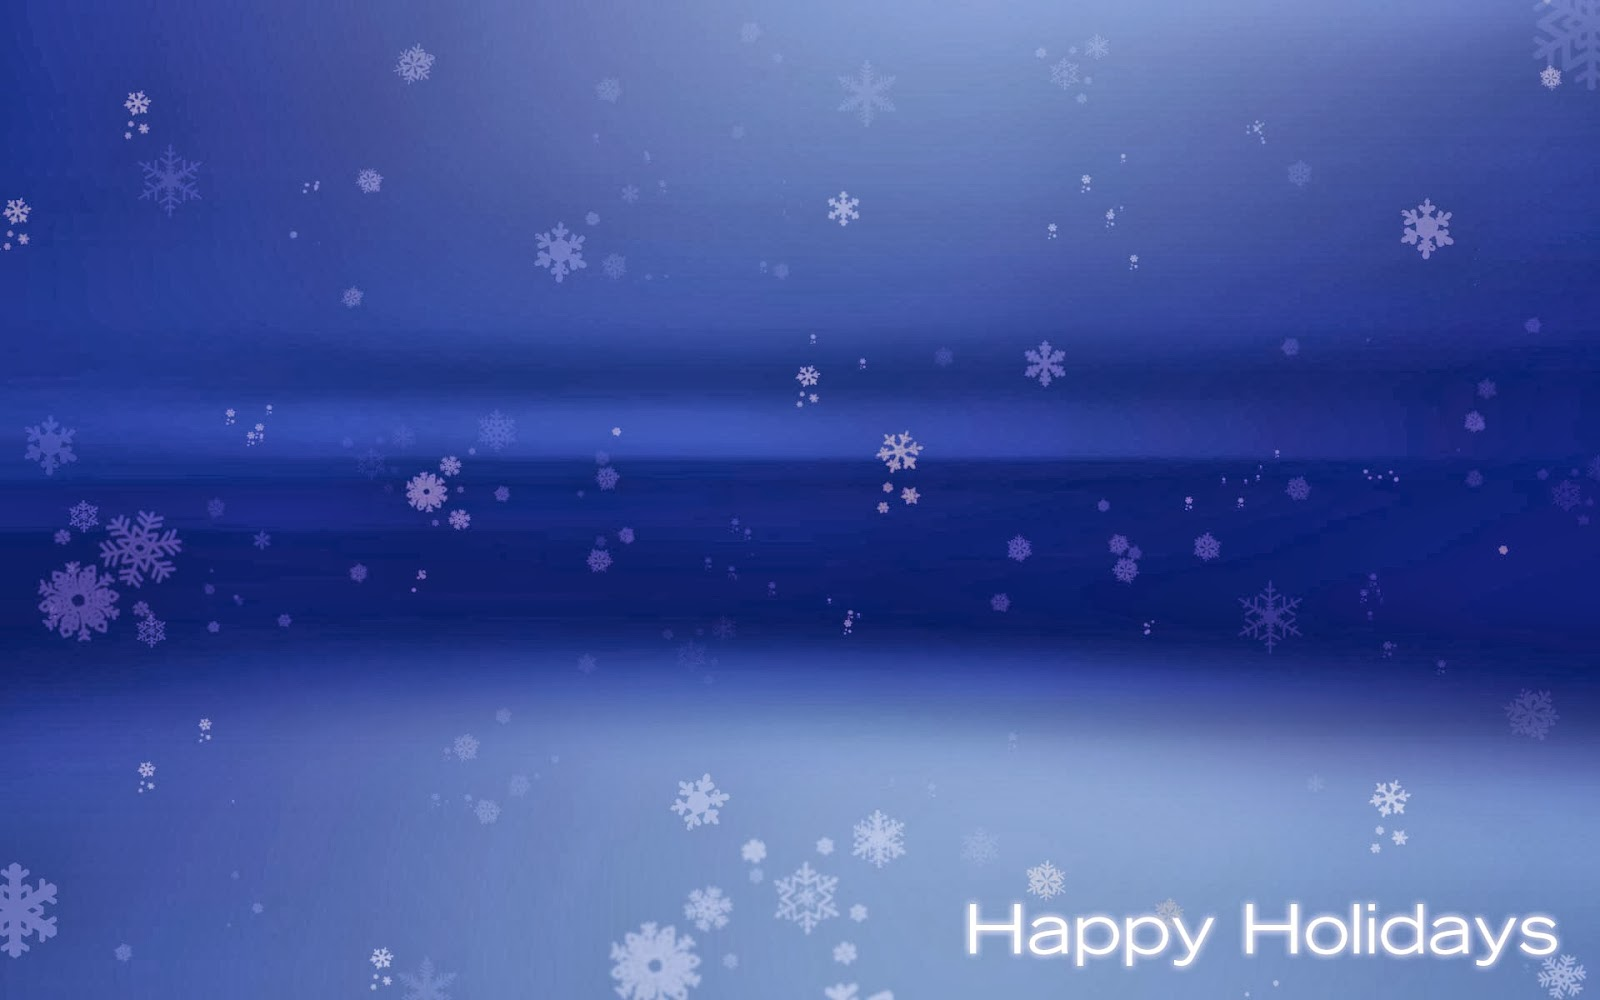 happy holidays quotes wallpaper free hd wallpapers